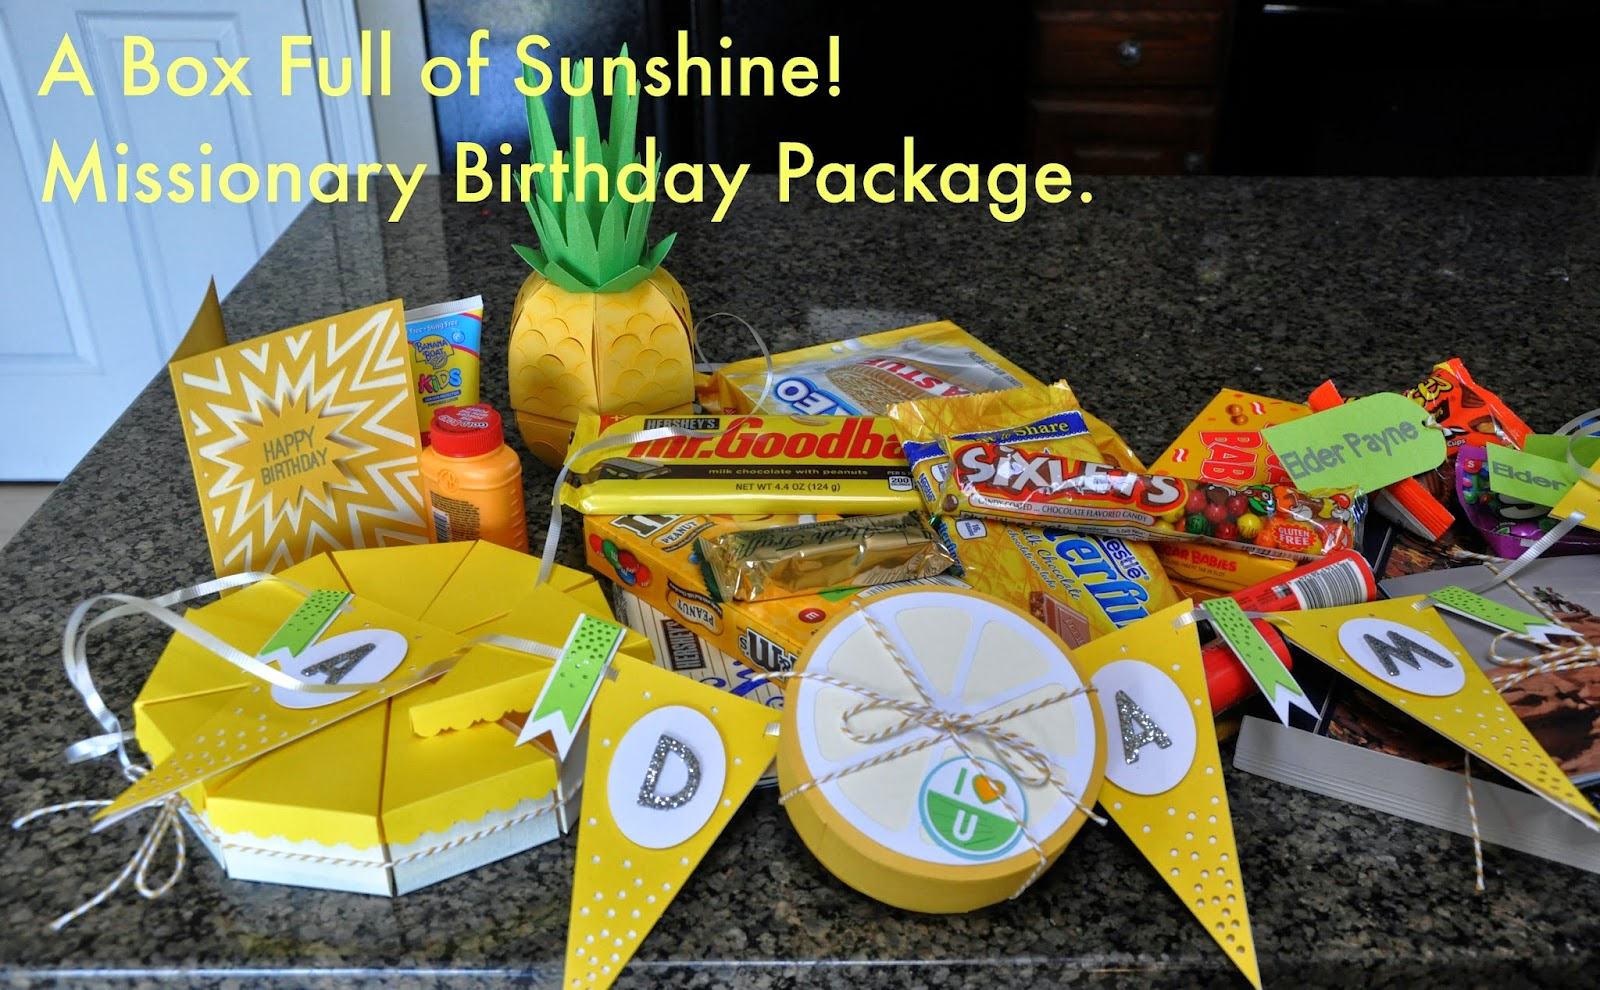 A Box full of sunshine! Missionary Birthday Package.